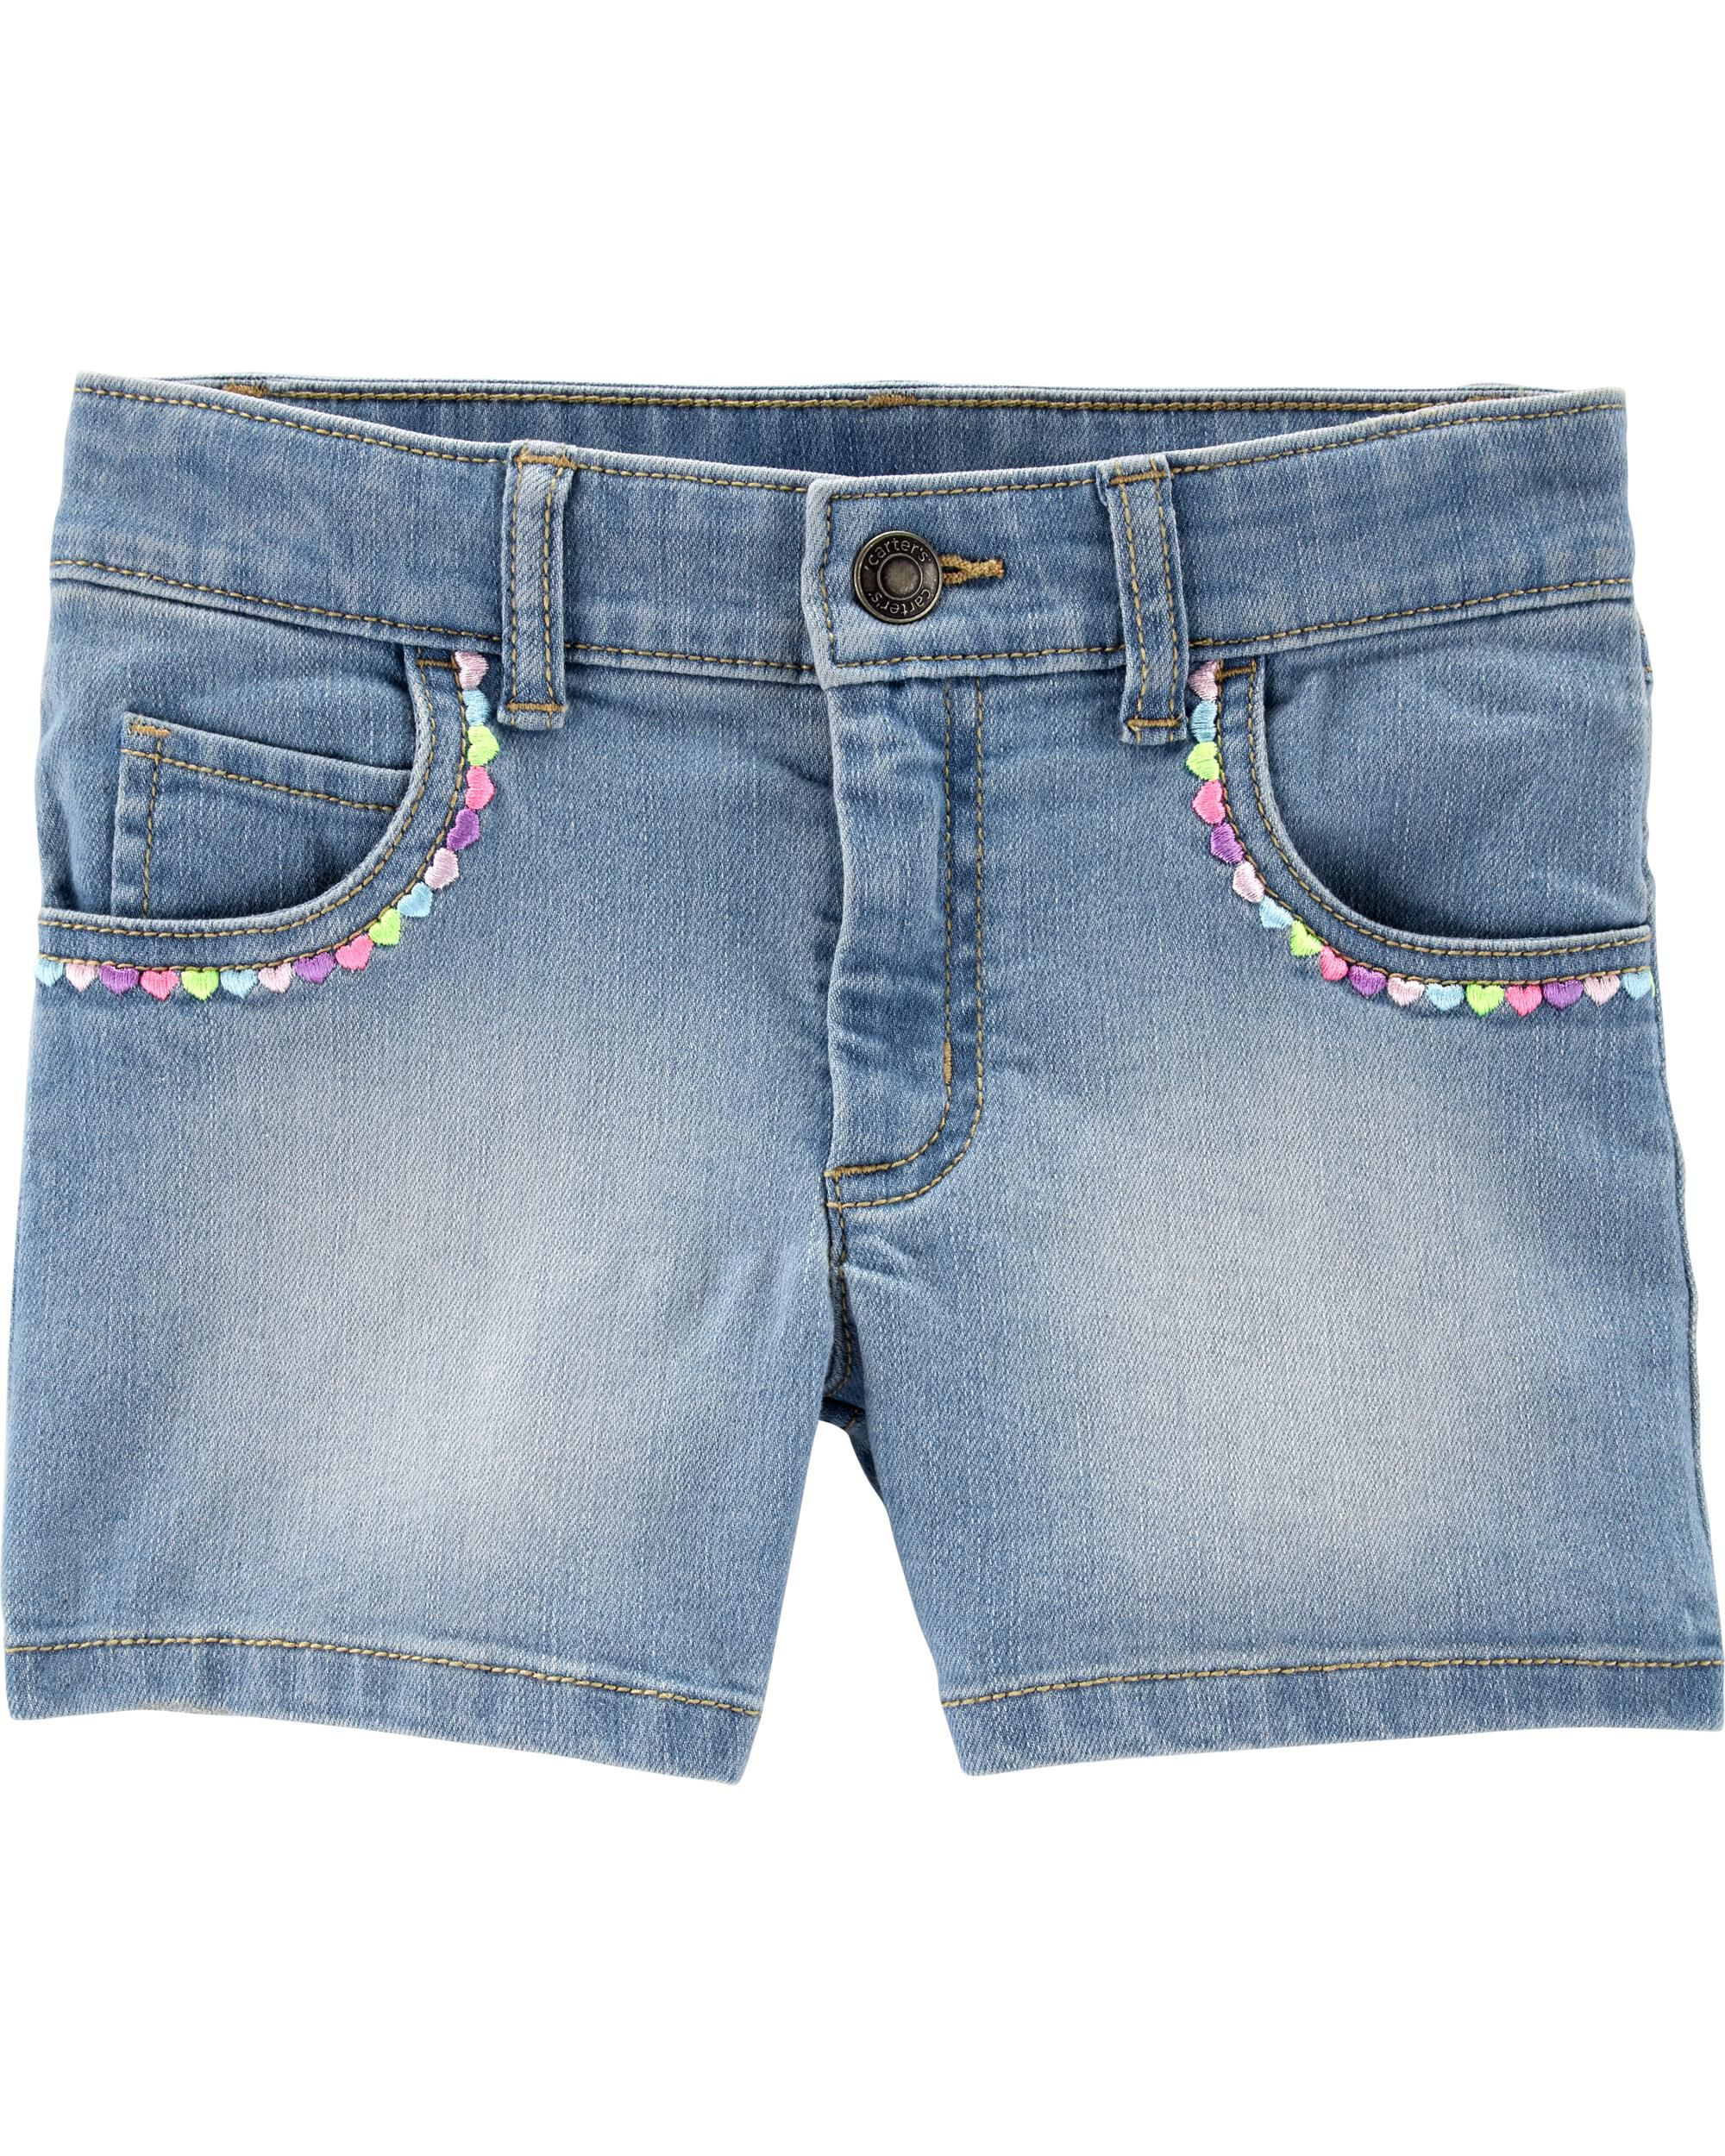 *Clearance*  Embroidered Heart 5-Pocket Denim Sh...